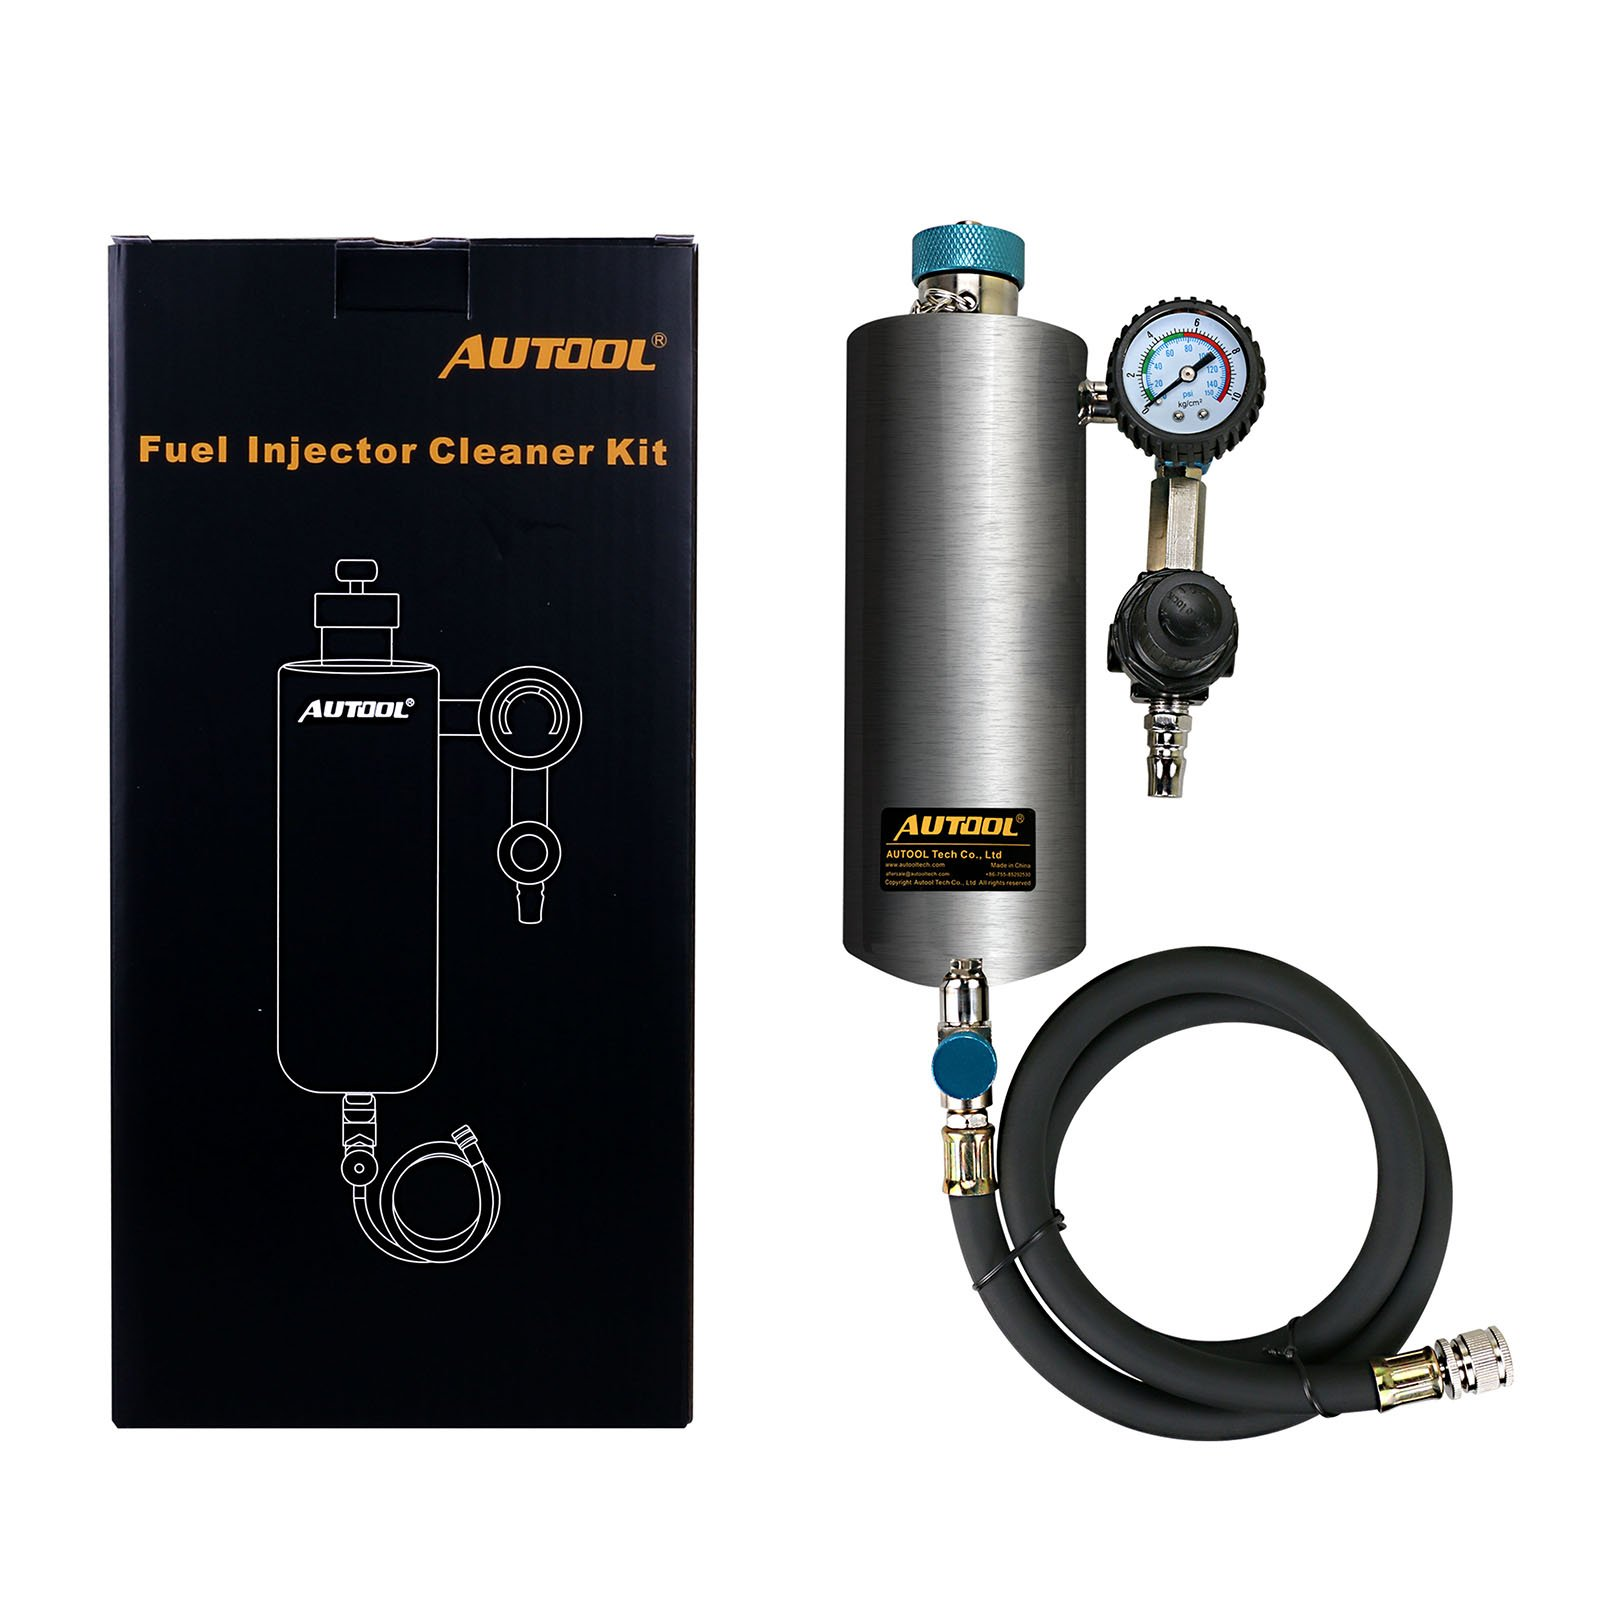 AUTOOL C80 Automotive Fuel Injection Systems Cleaning Tools C-80 CFS Series Fuel System Cleaning Assistant Fuel Injector Cleaner 600ML 140PSI